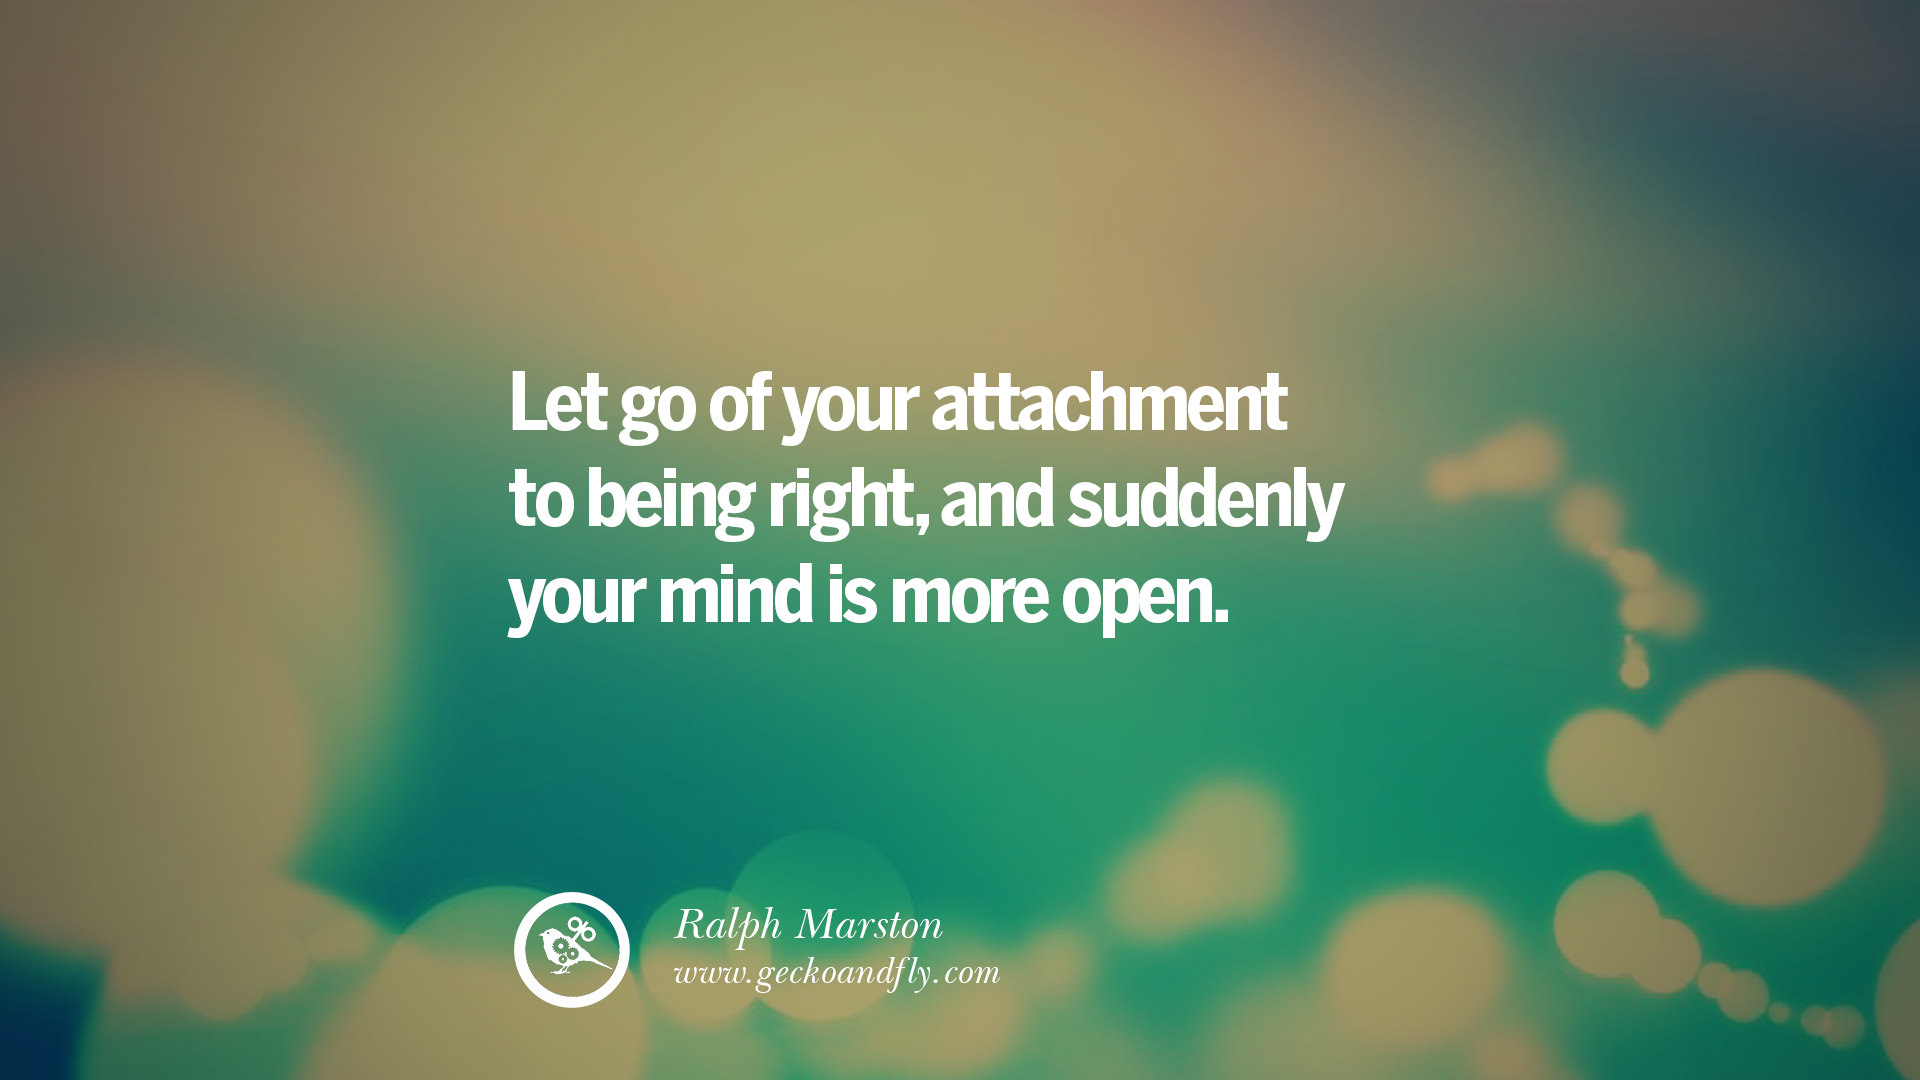 Let go of your attachment to being right and suddenly your mind is more open